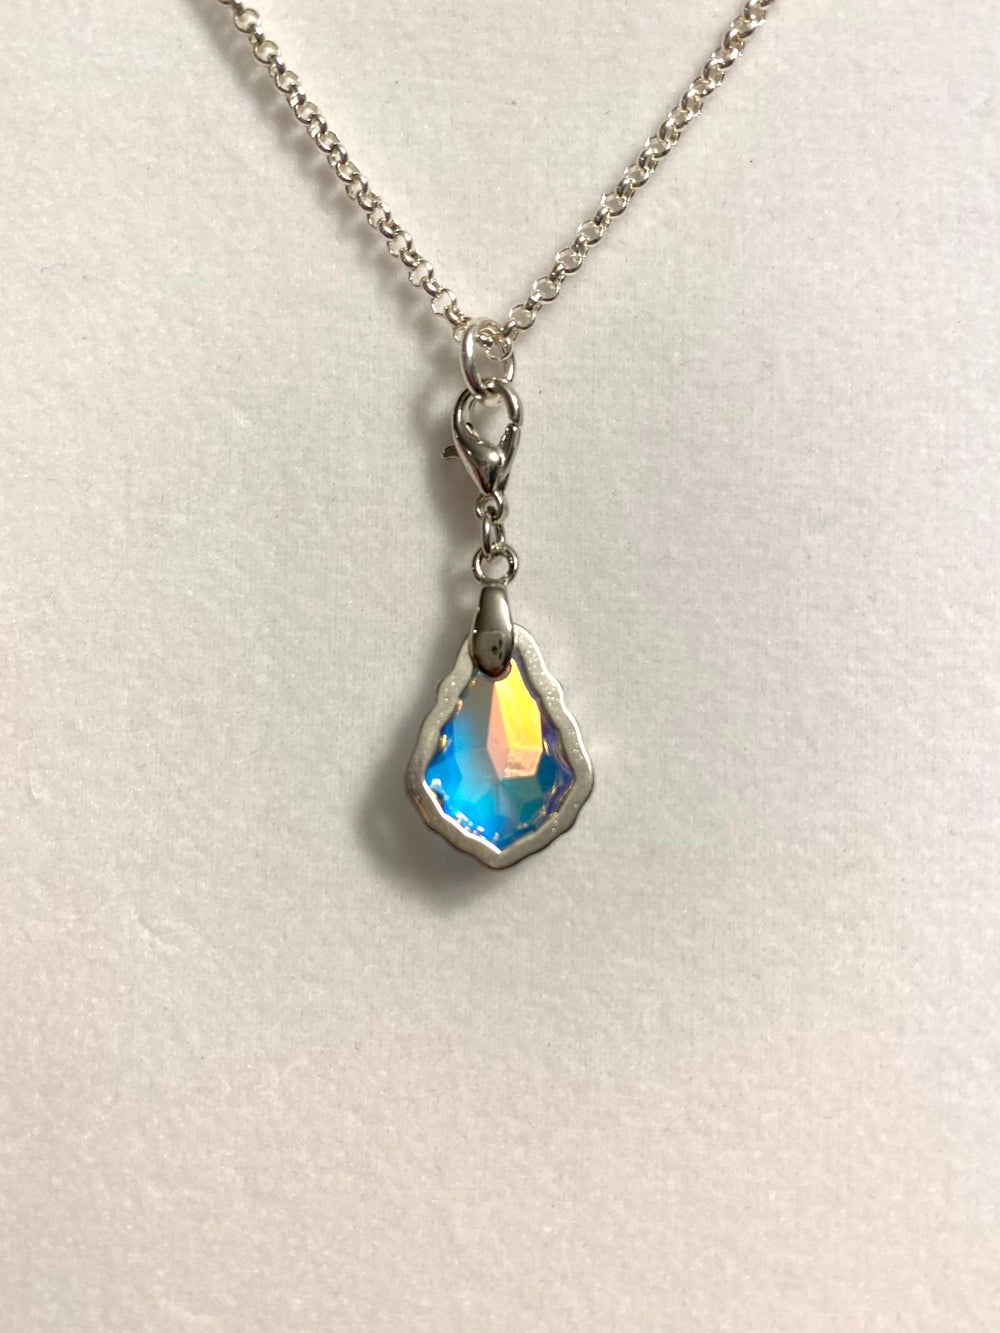 Baroque Crystal Pendant and Silver Chain Necklace